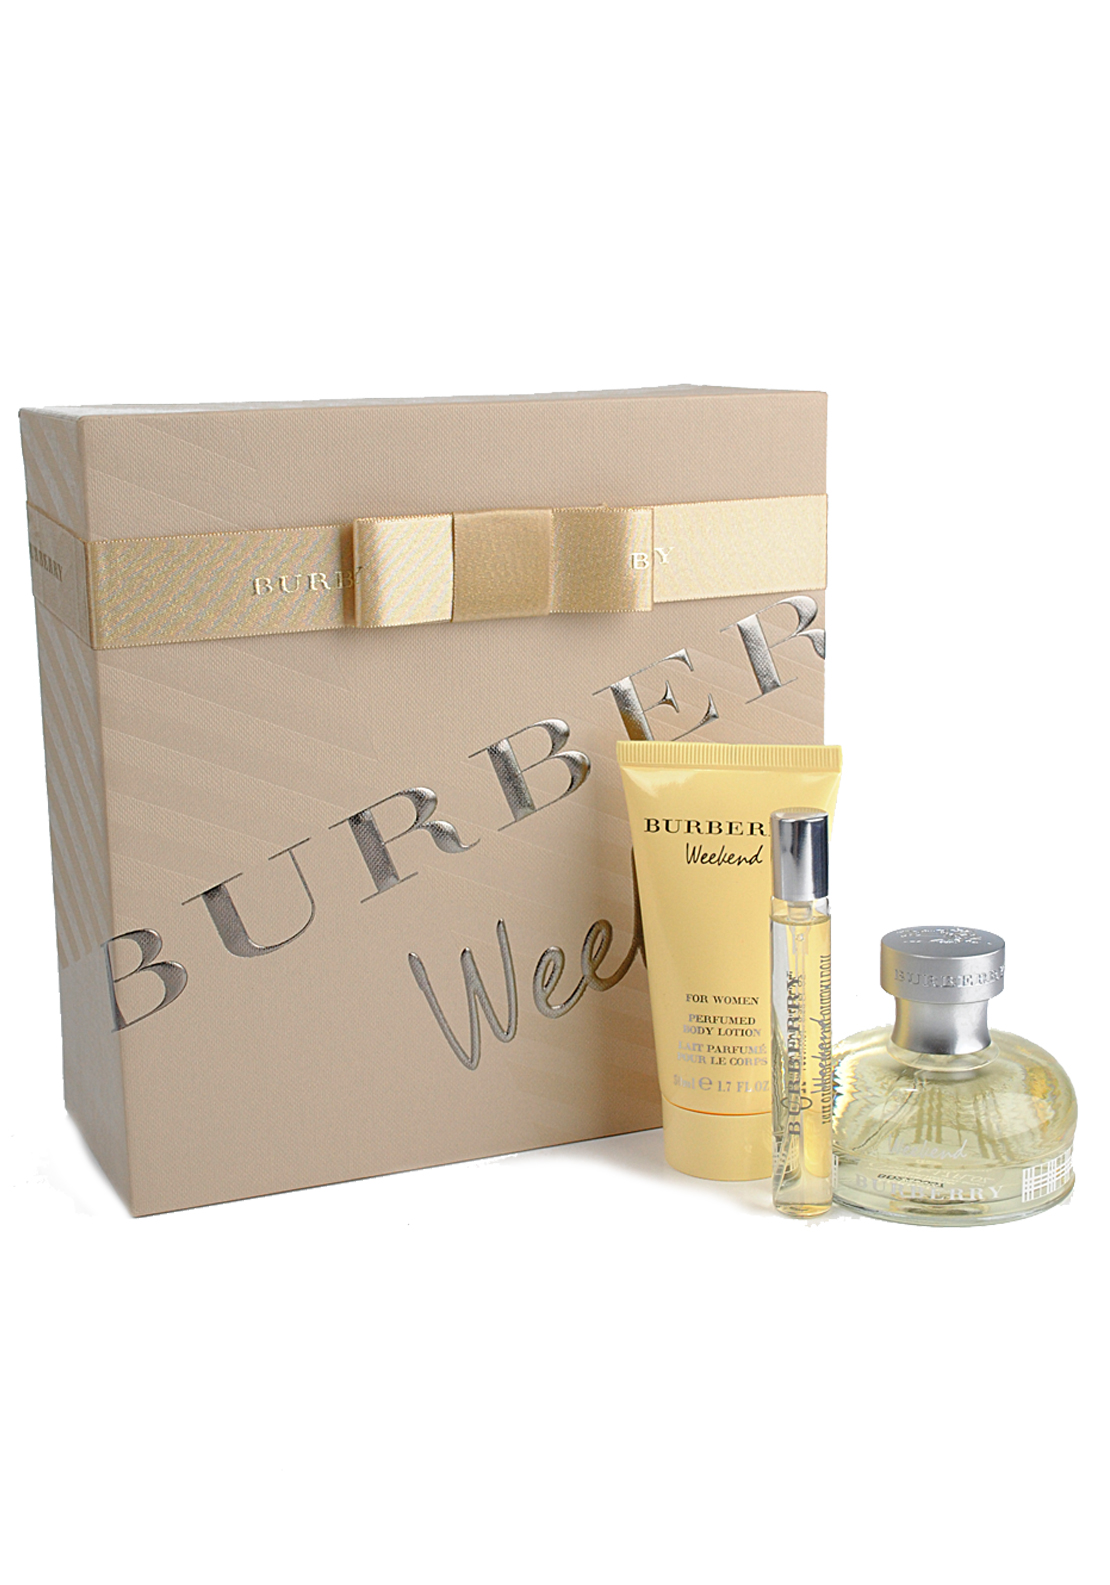 Burberry Weekend for Womens Gift Set